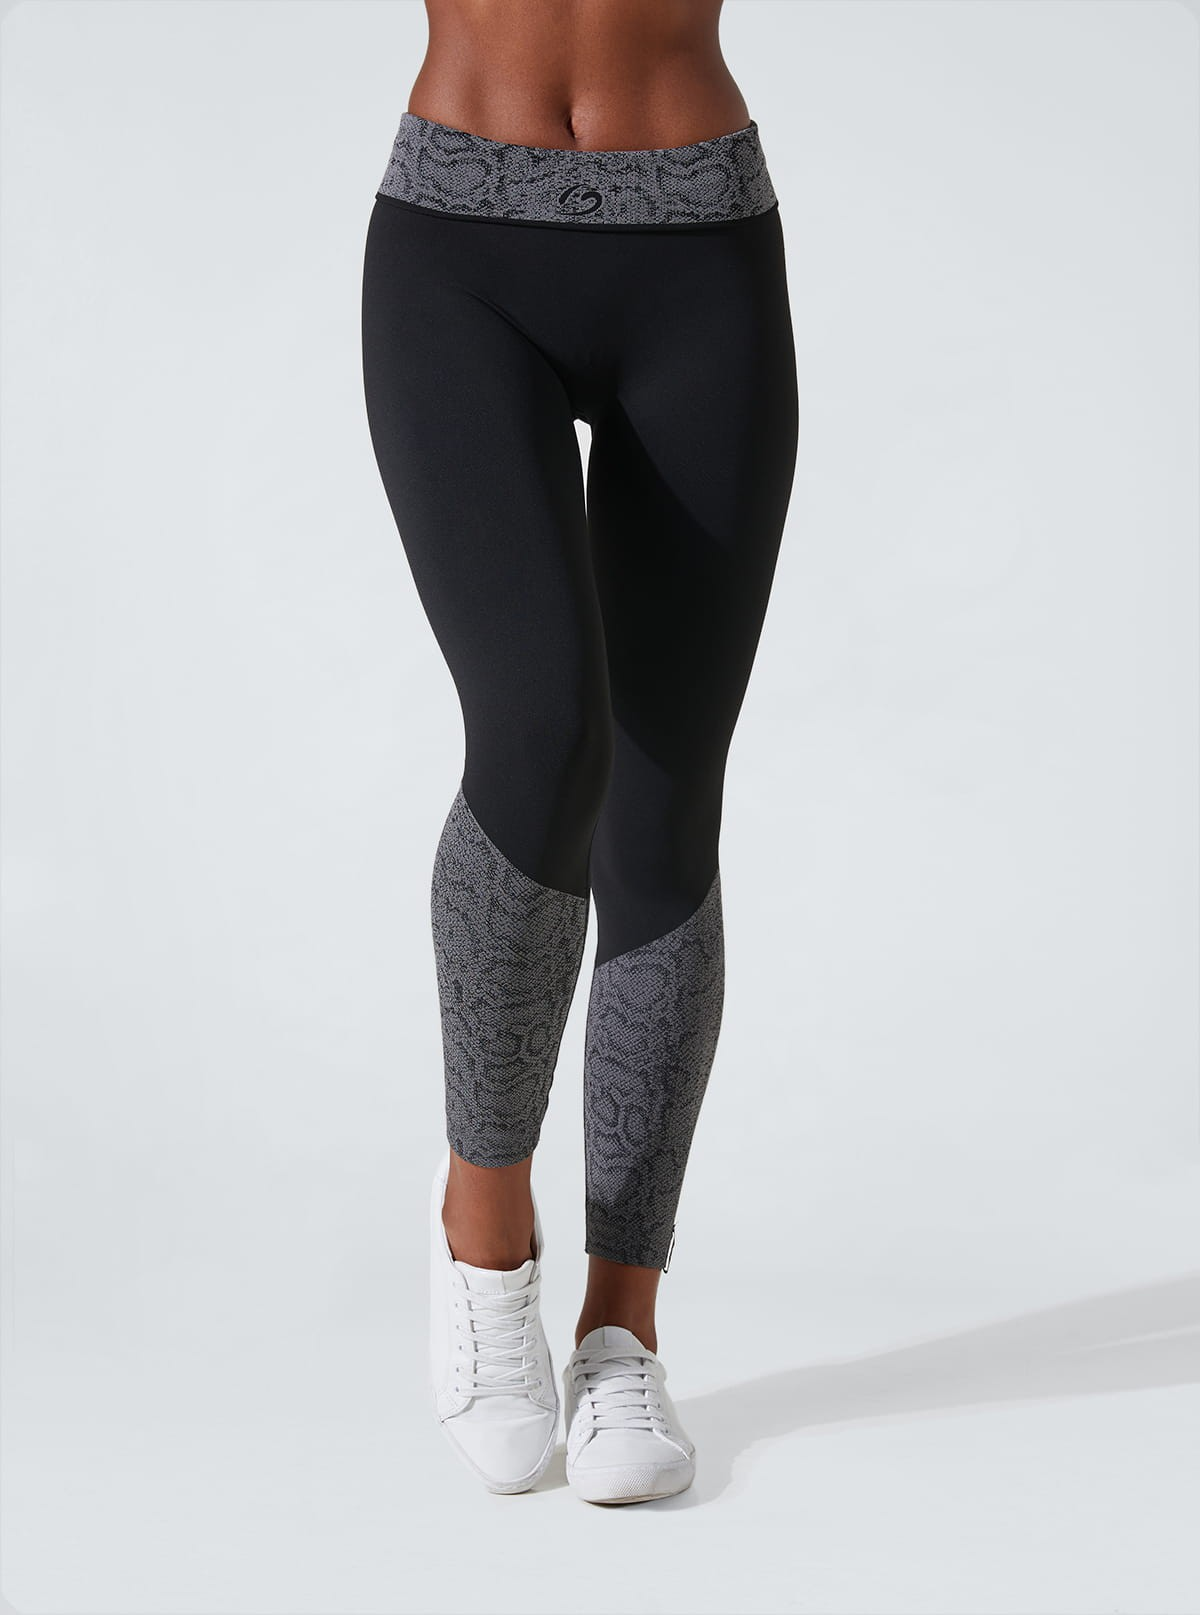 Superslim leggings, flat tummy, draining and hydrating with jacquard python print inserts